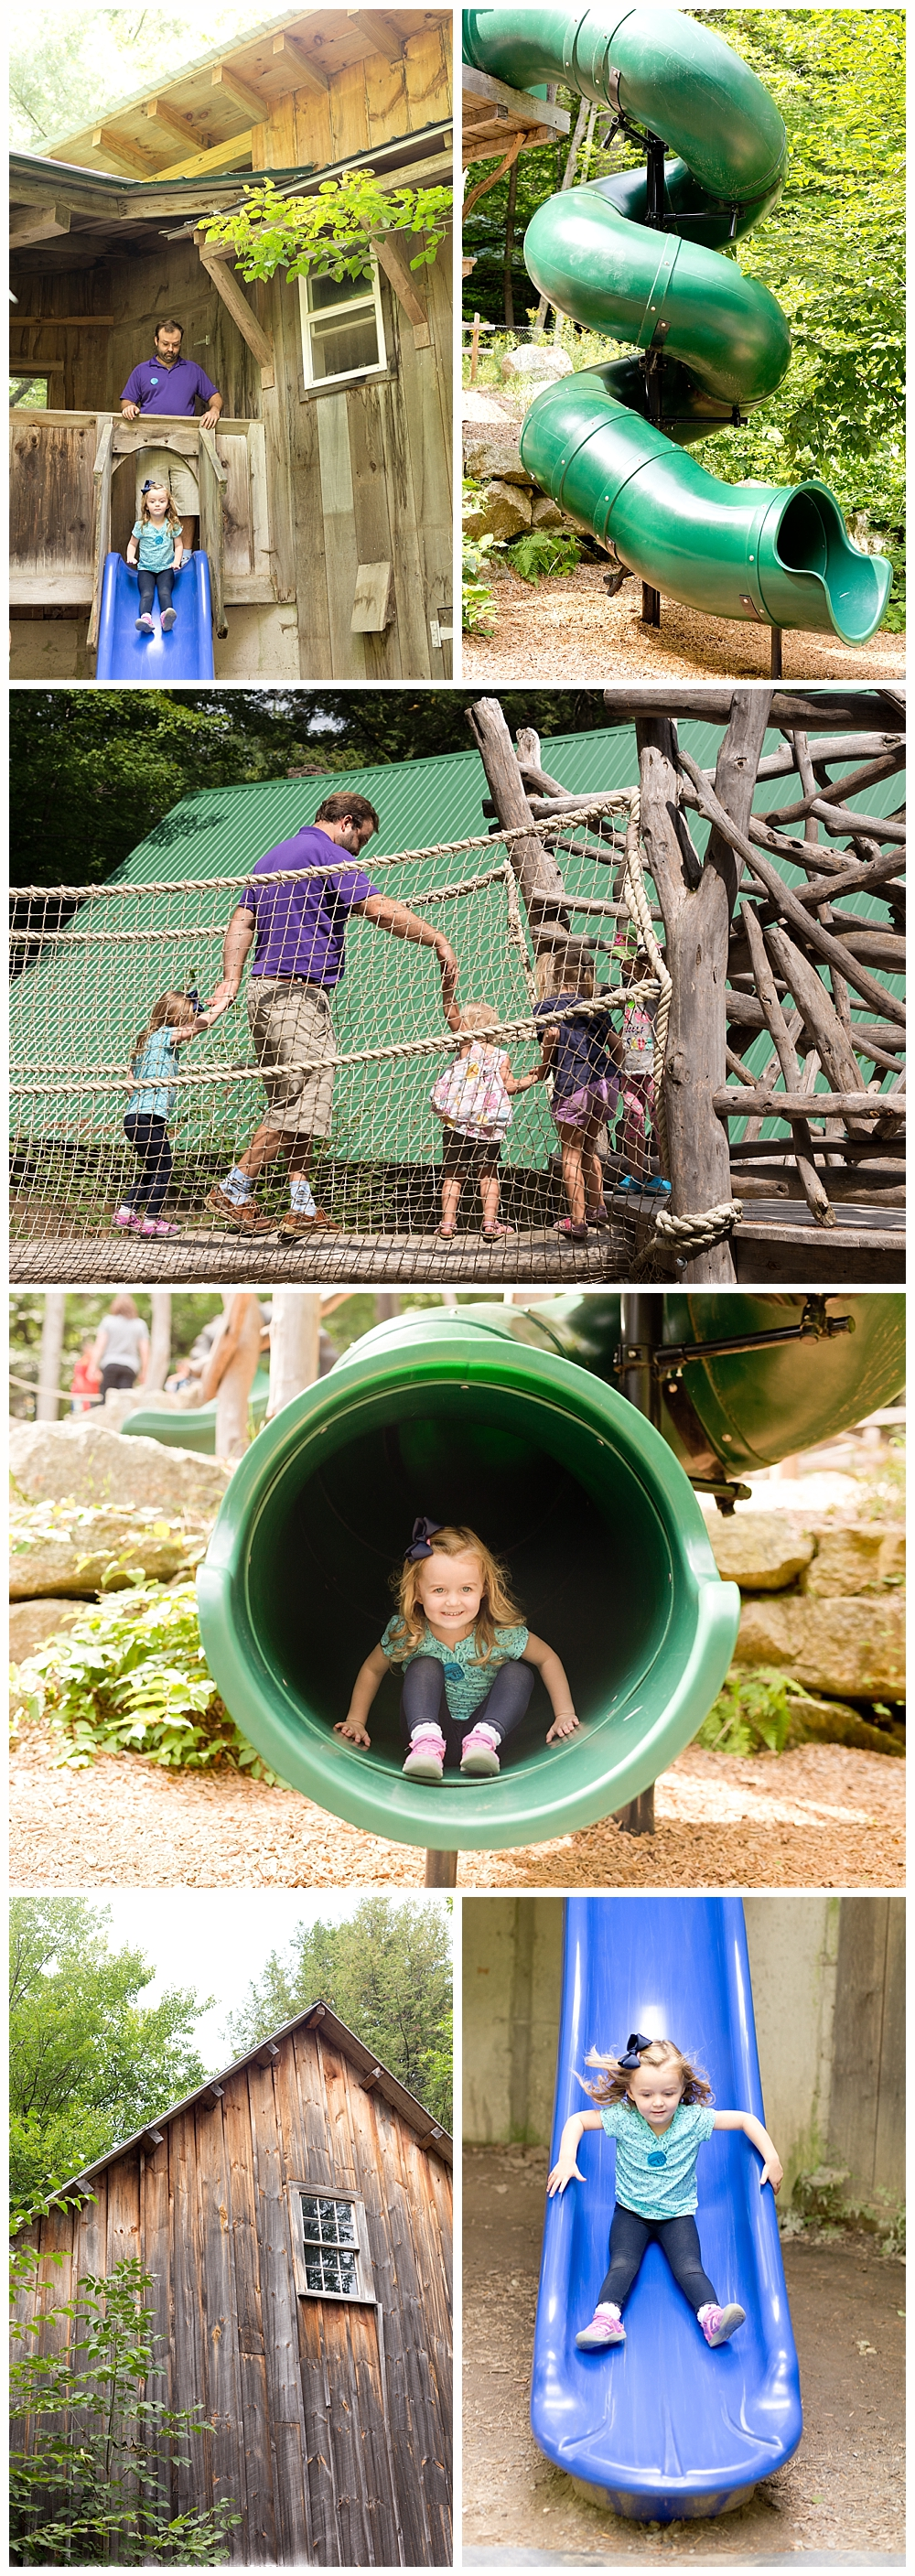 little girl having fun on huge playground at Squam Lakes Natural Science Center